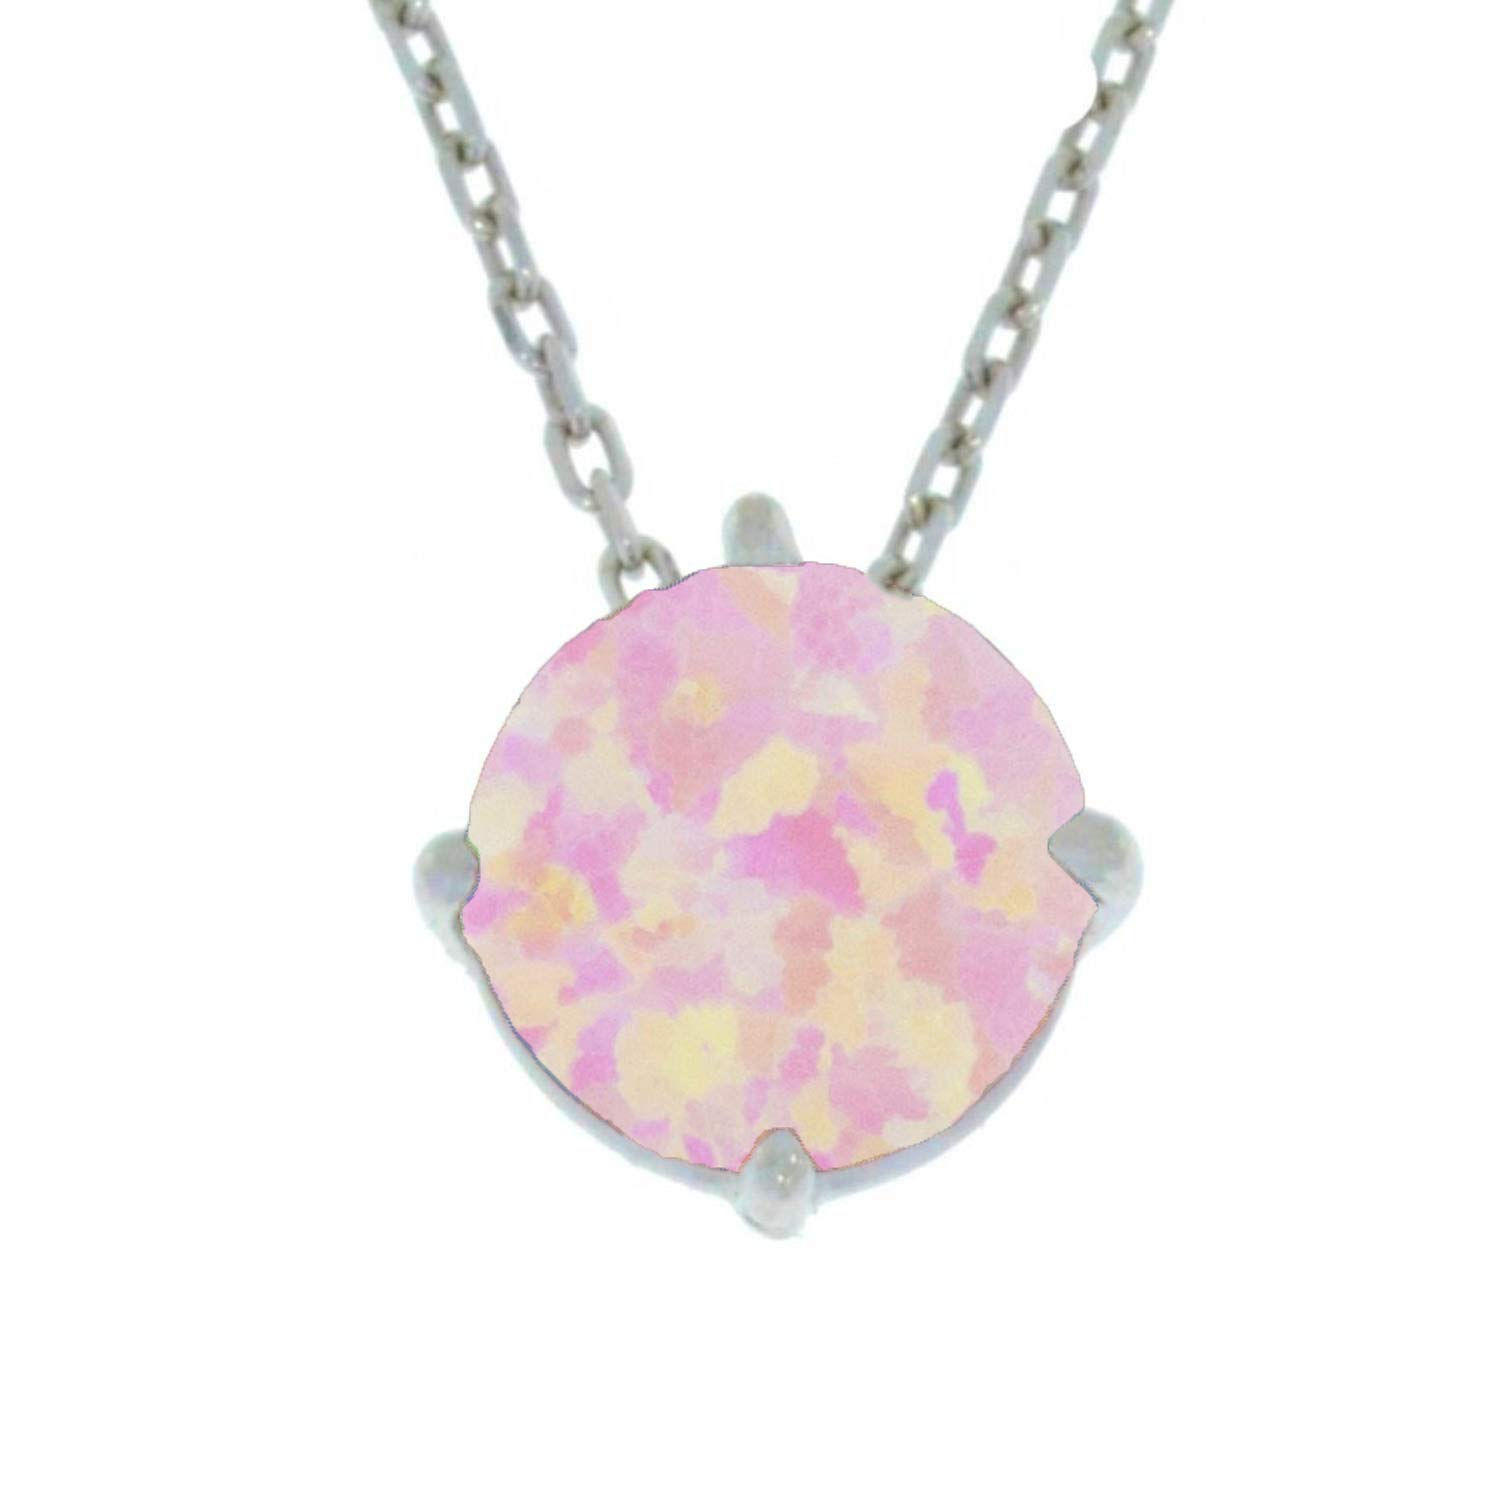 14k Yellow//White Gold 8mm Purple Simulated Opal Pendant Necklace